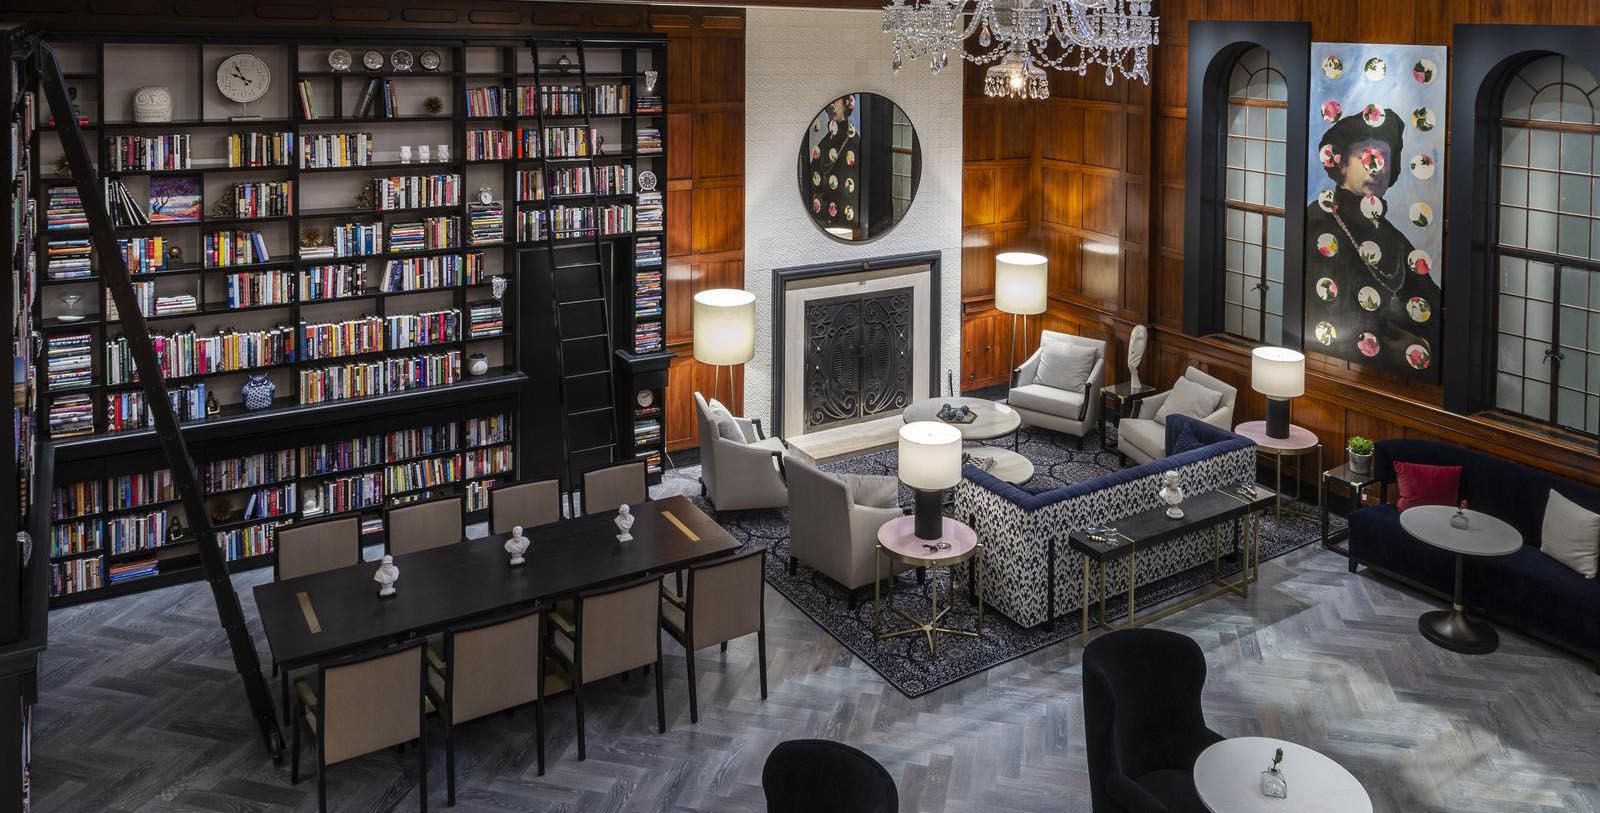 Image of Library The Heathman Hotel, 1927, Member of Historic Hotels of America, in Portland, Oregon, Special Offers, Discounted Rates, Families, Romantic Escape, Honeymoons, Anniversaries, Reunions